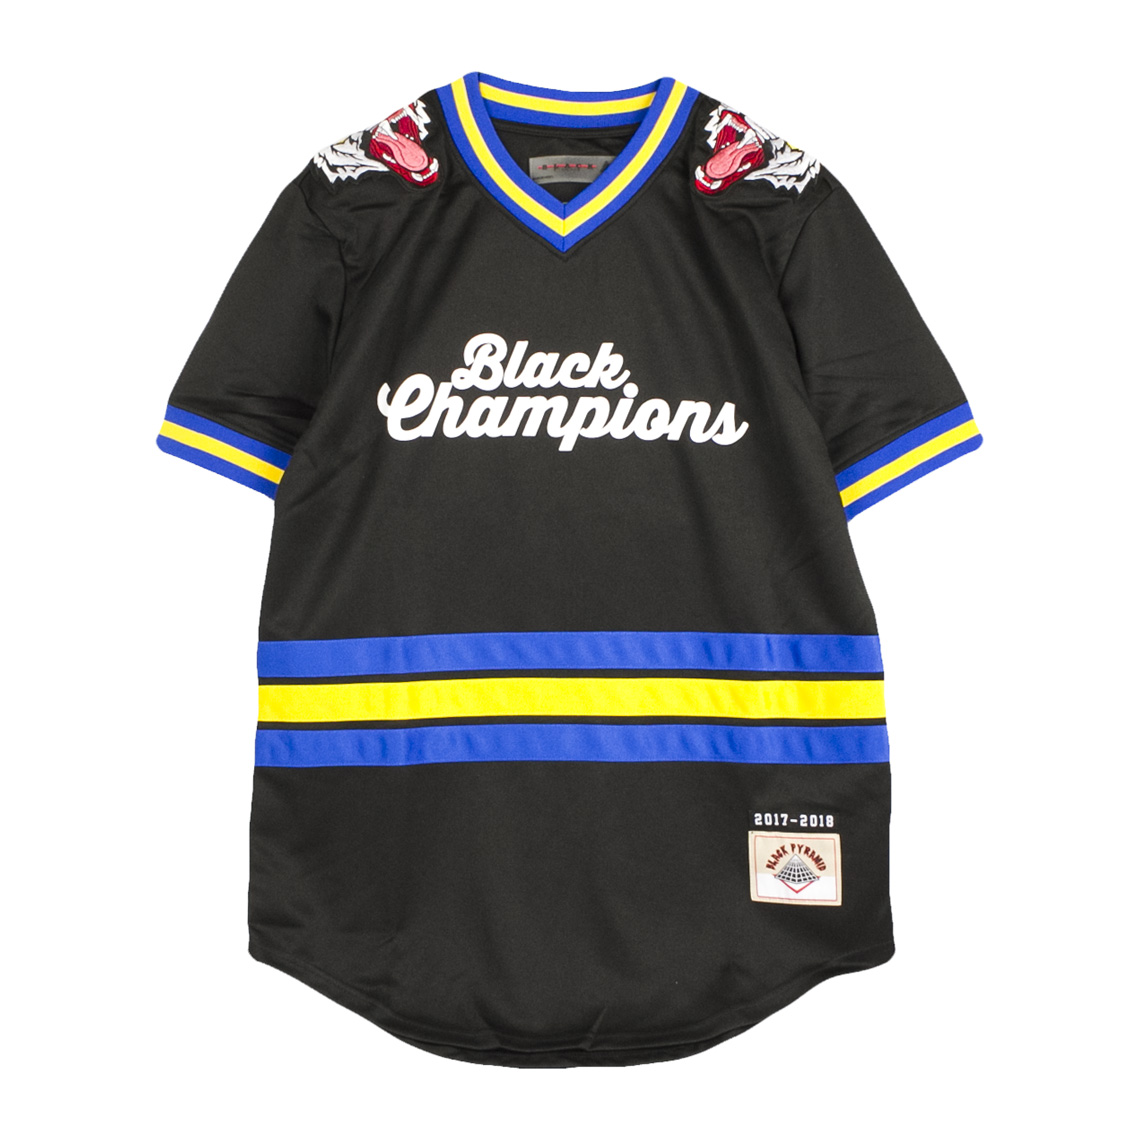 Black Pyramid 'The Home Run' T-Shirt Baseball Jersey Find this Pin and more on black pyramid clothing chris brown by Alair Scott. Designer Clothes, Shoes & Bags for Women How To Get The Knowledge To Play Ball -- More details can be found by clicking on the image.